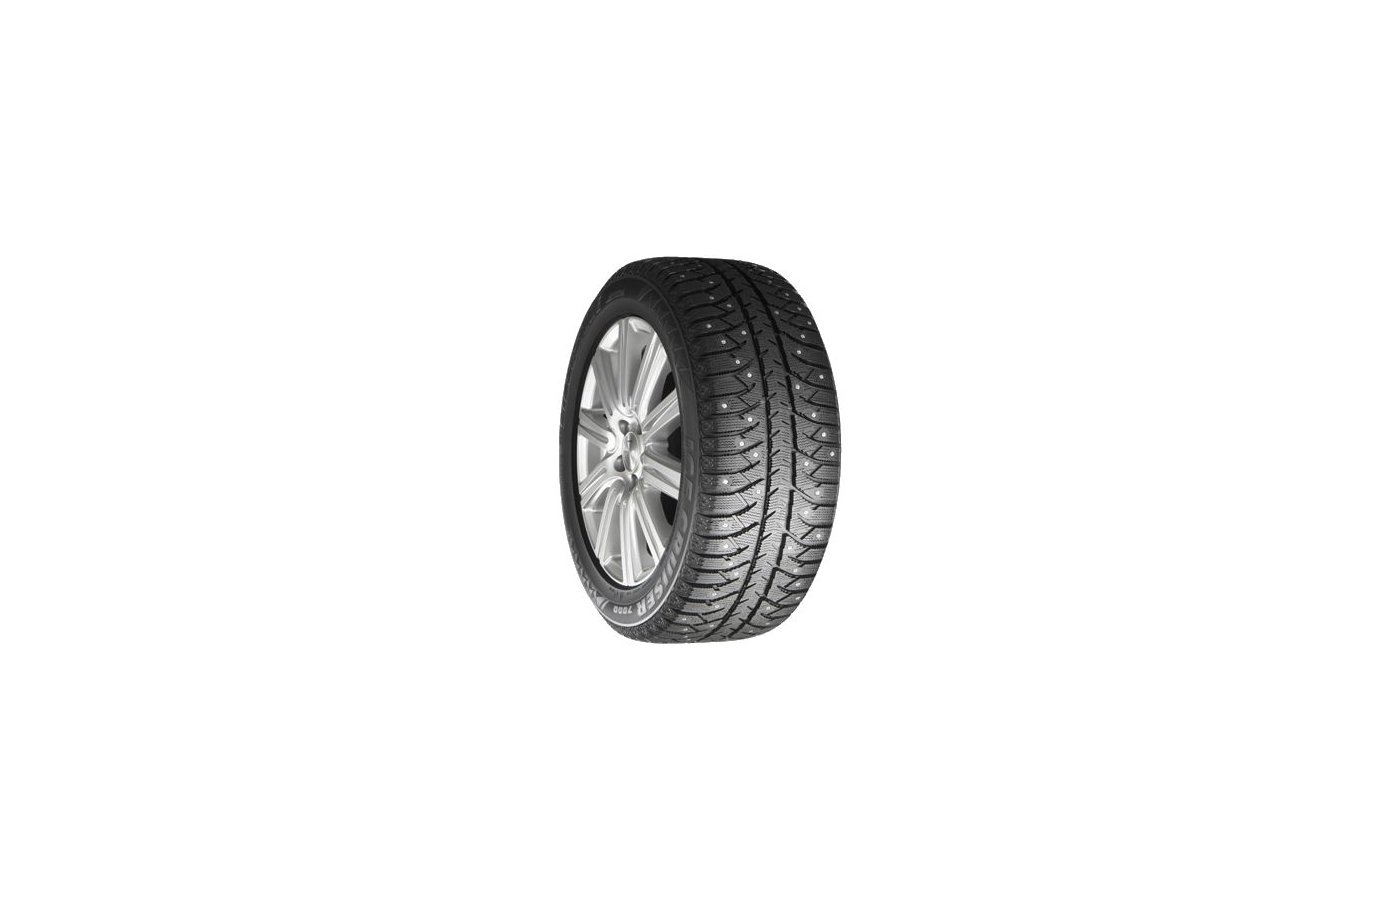 Шина Bridgestone Ice Cruiser 7000 215/60 R16 TL 95T шип